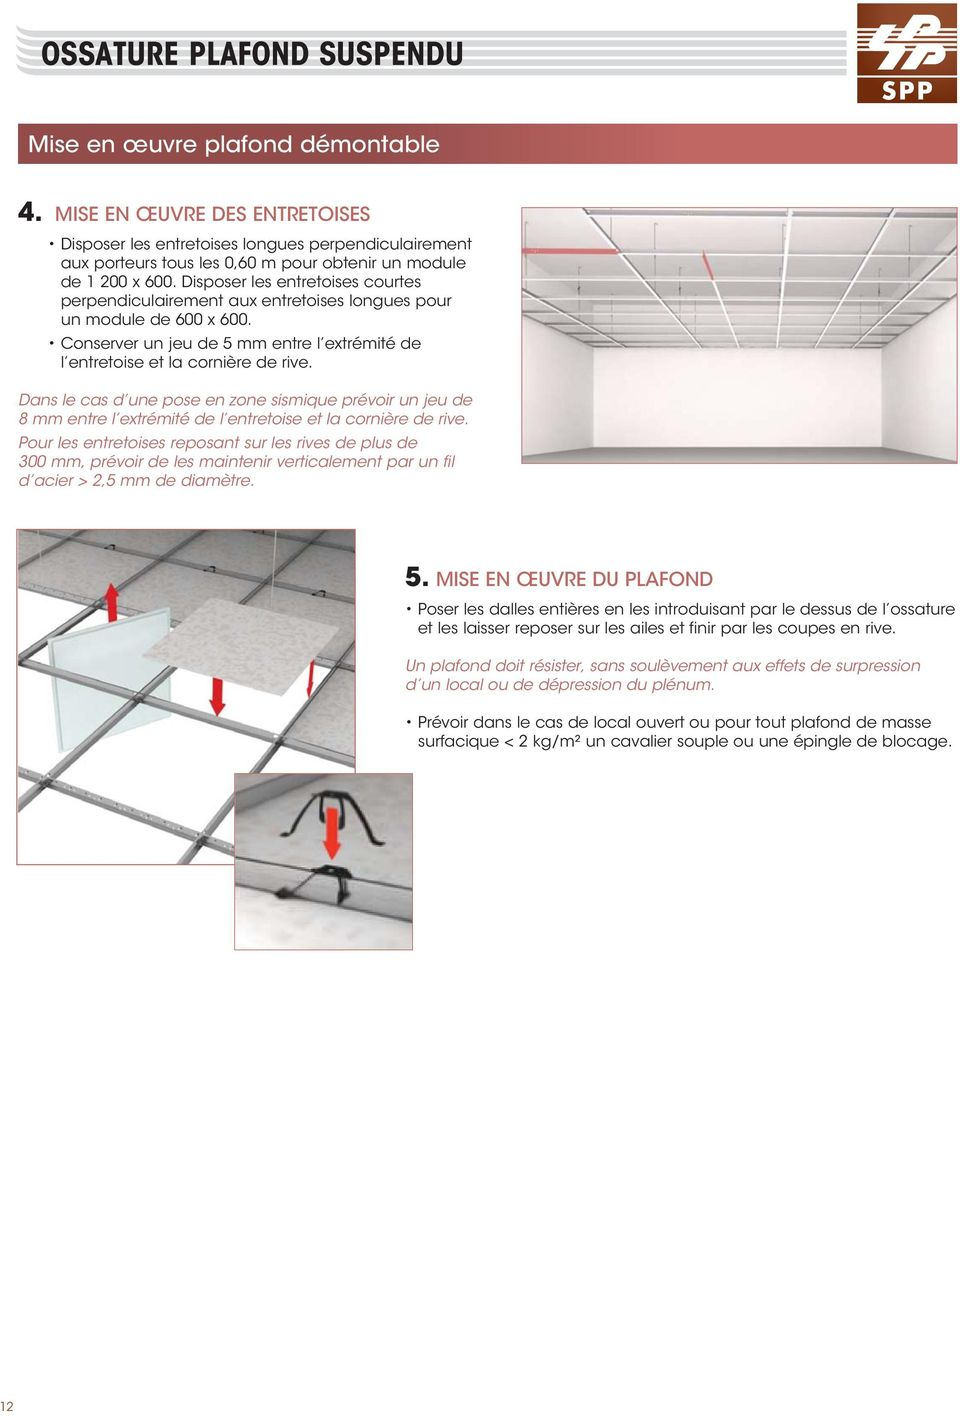 Profils omnifix porteurs entretoises corni res guide de for Attache faux plafond